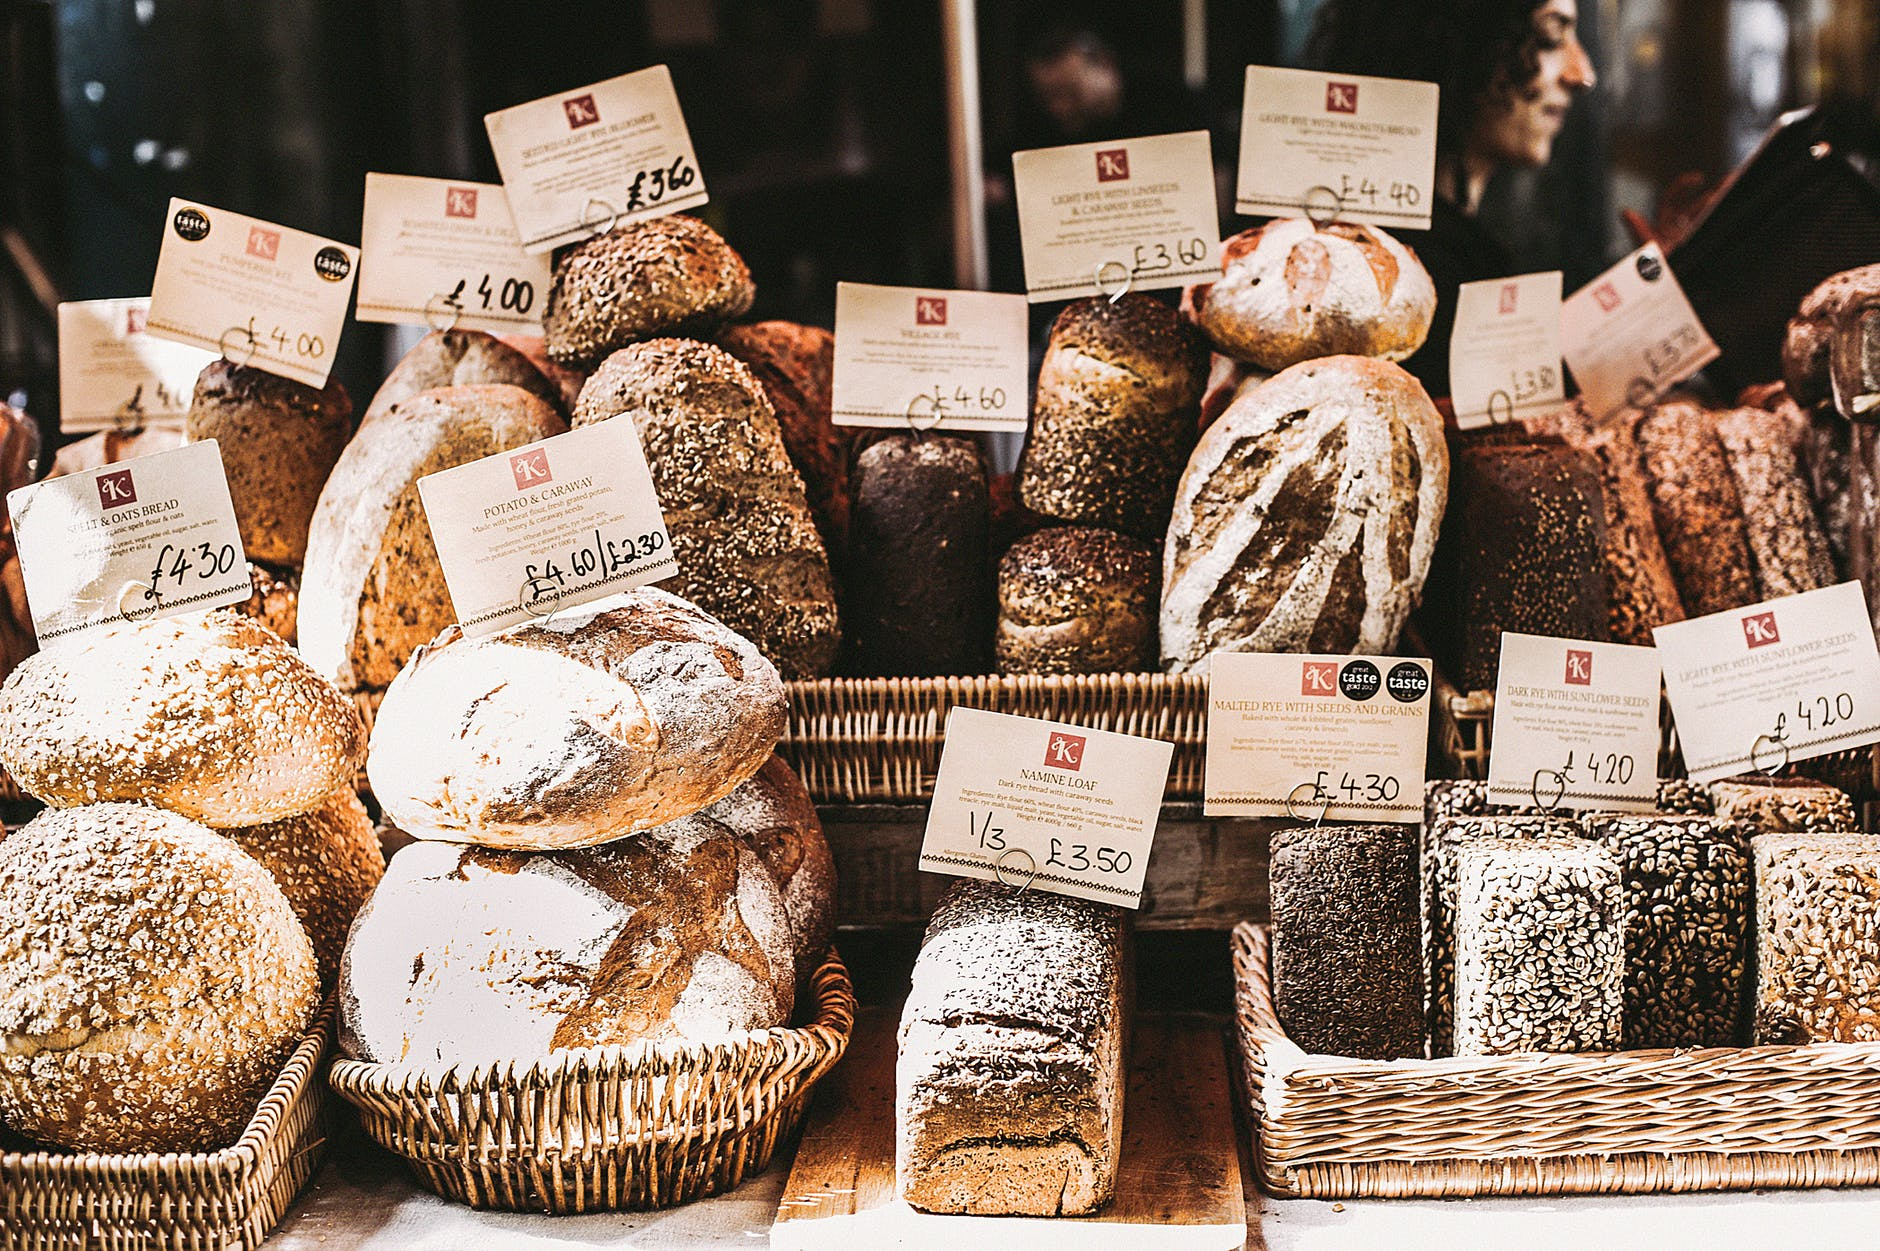 various breads on wicker baskets